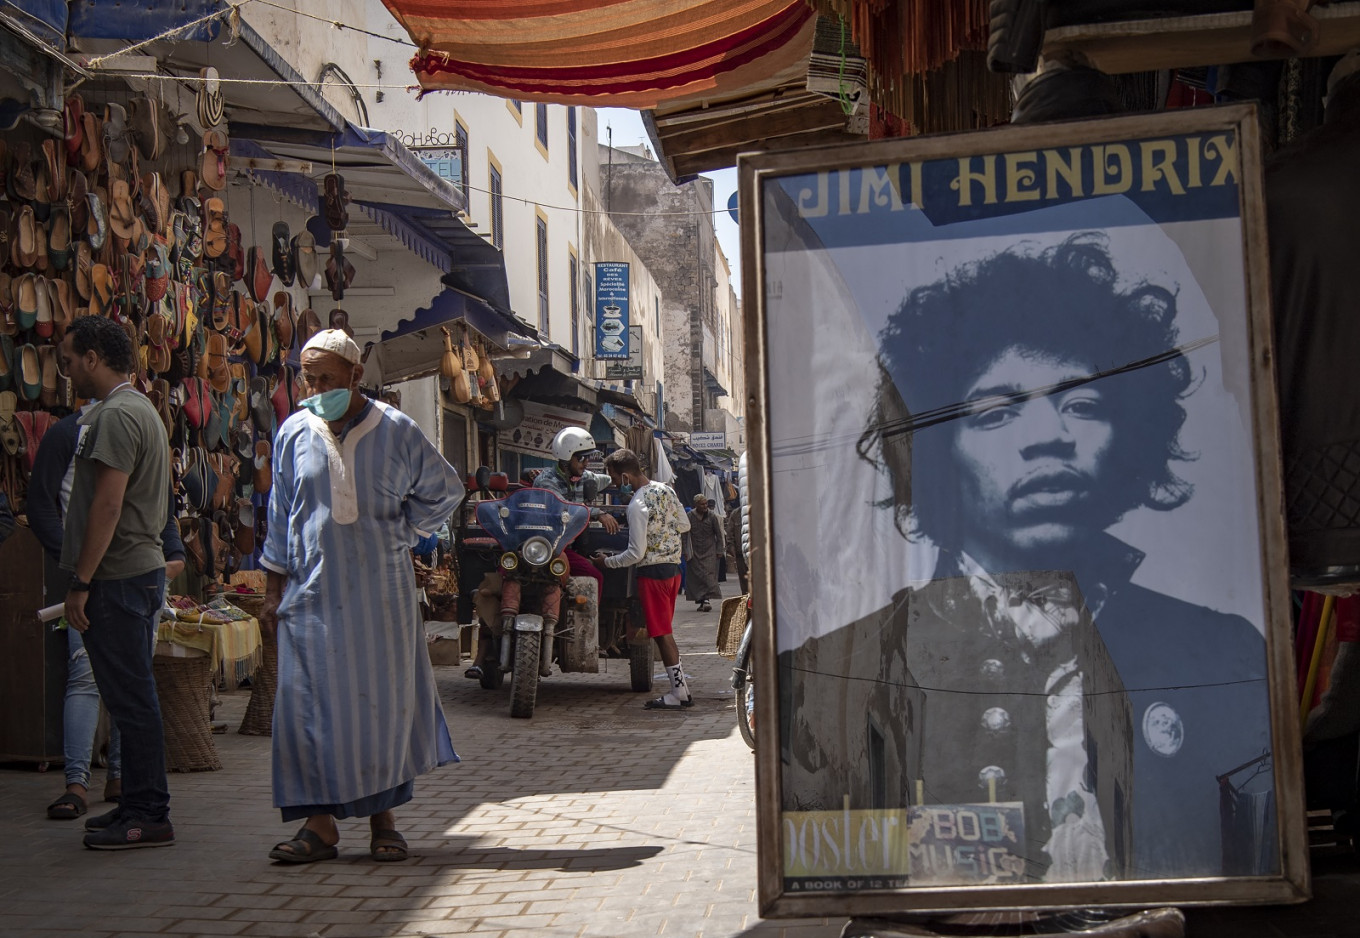 Moroccan village riffs on Hendrix legends and myths